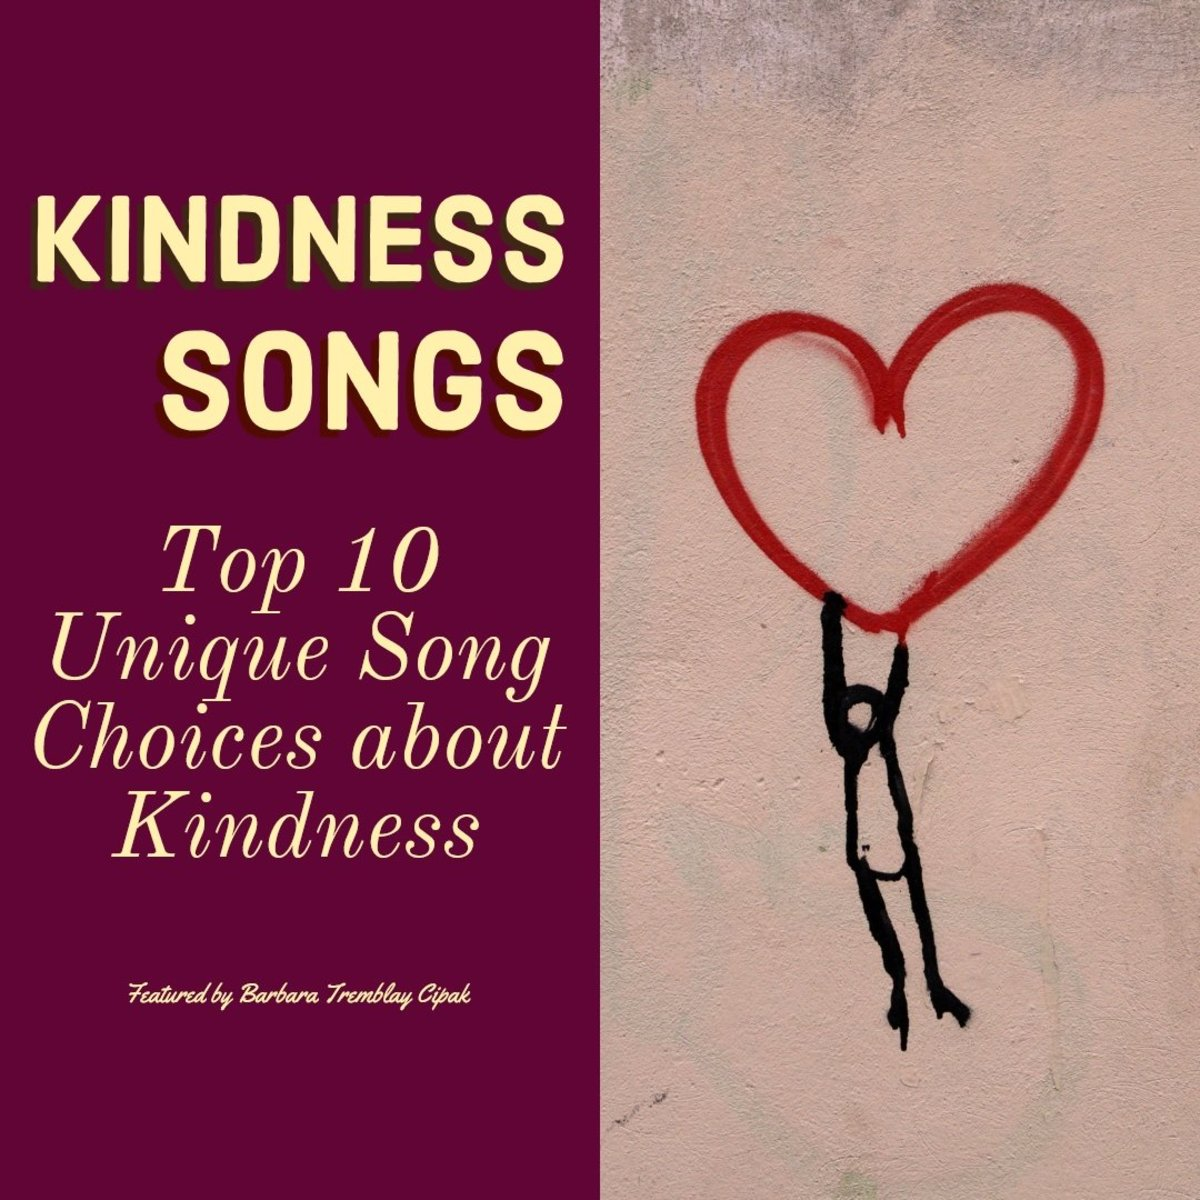 Songs About Kindness